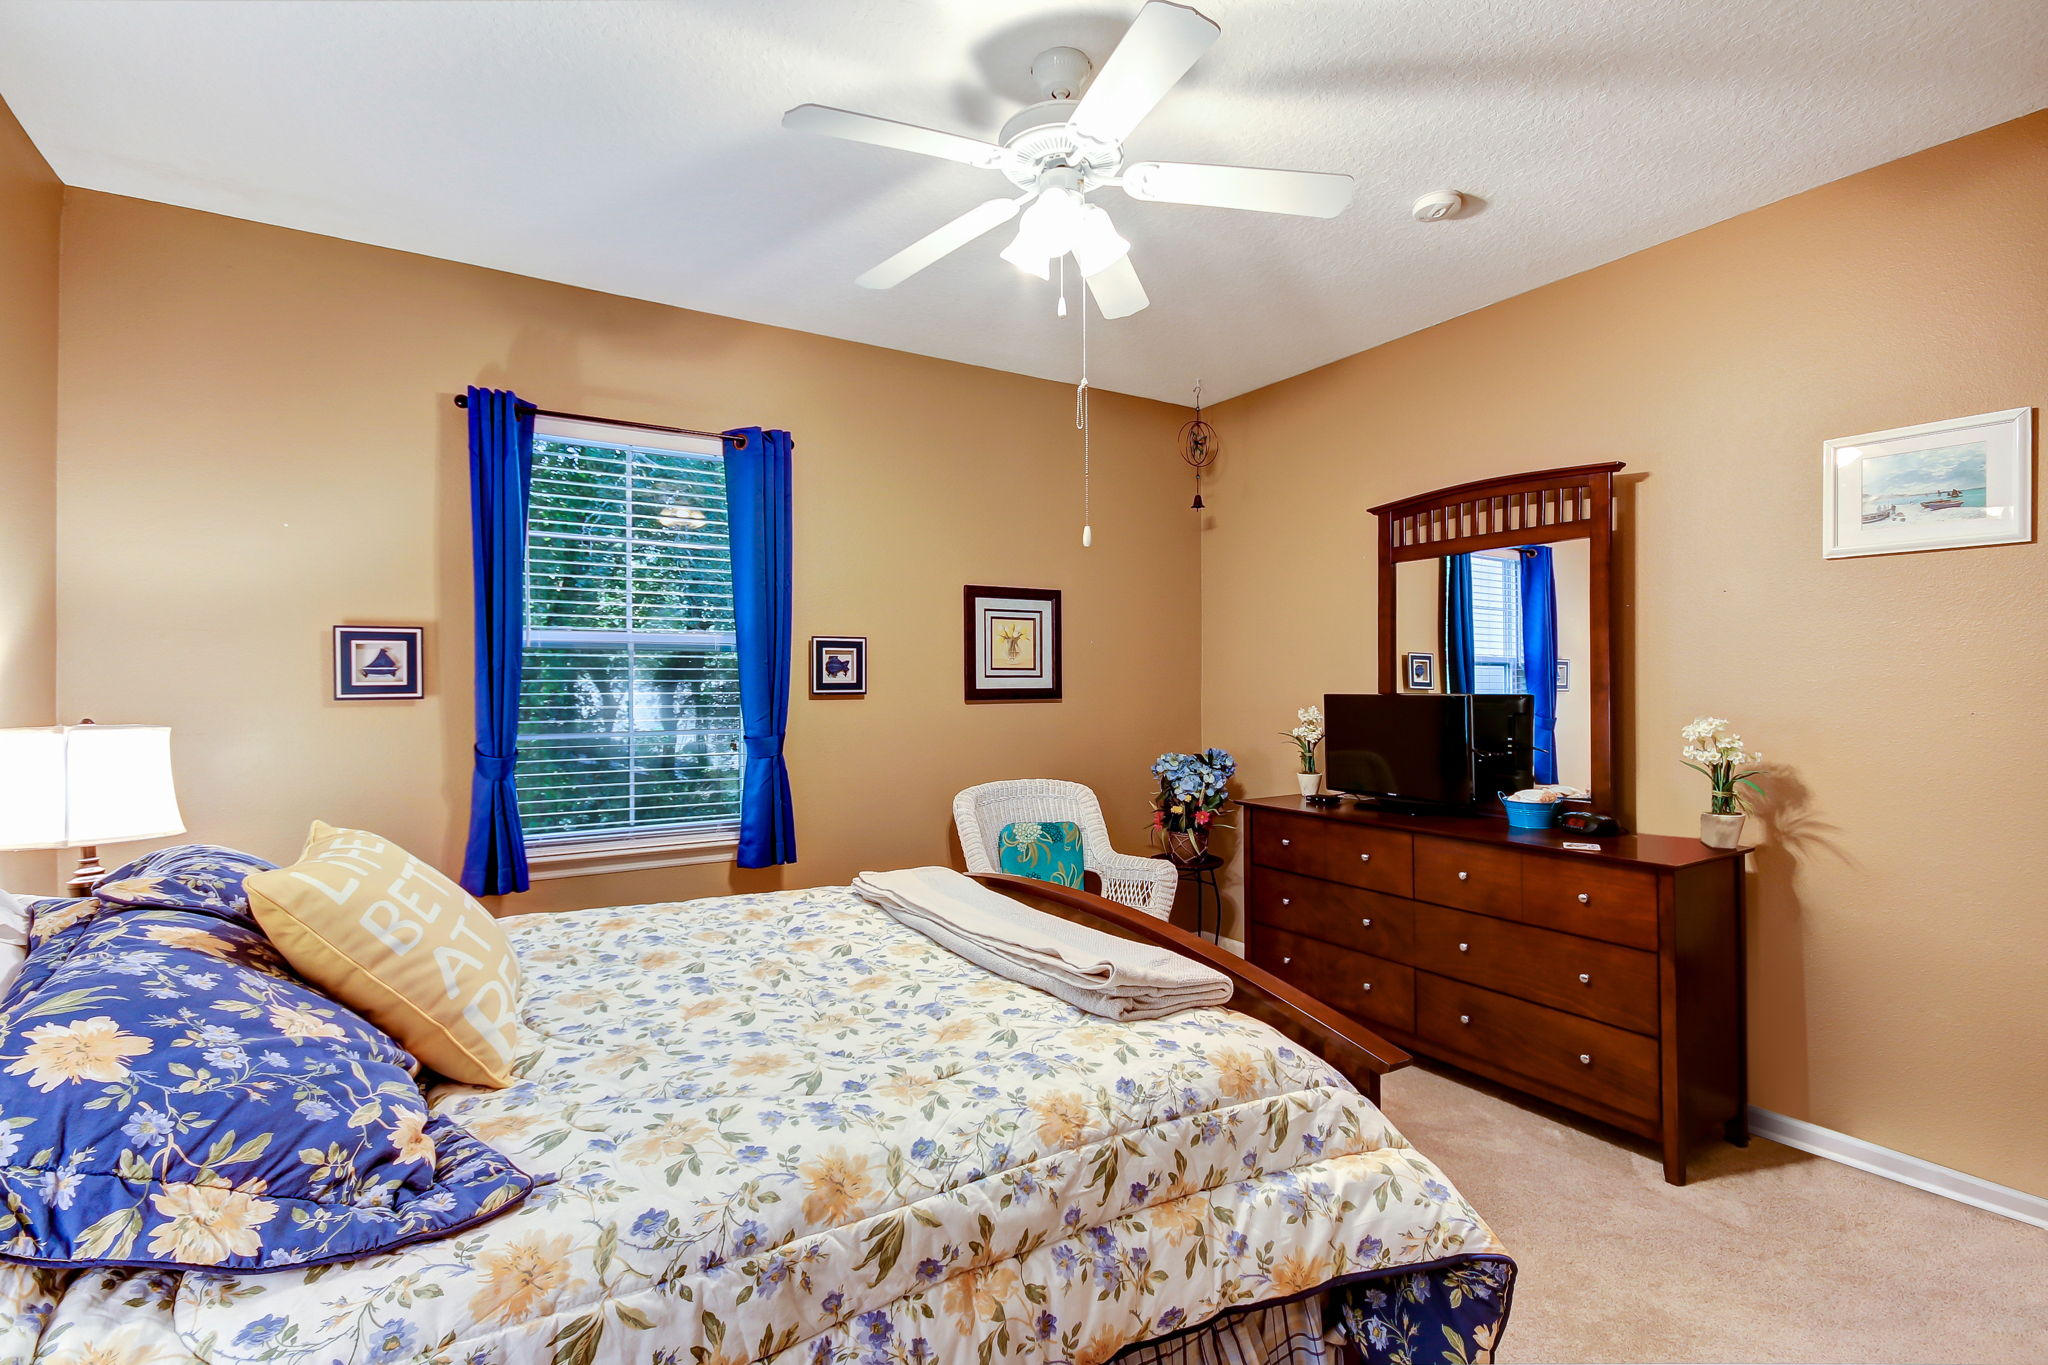 Ceiling fans are featured throughout the home